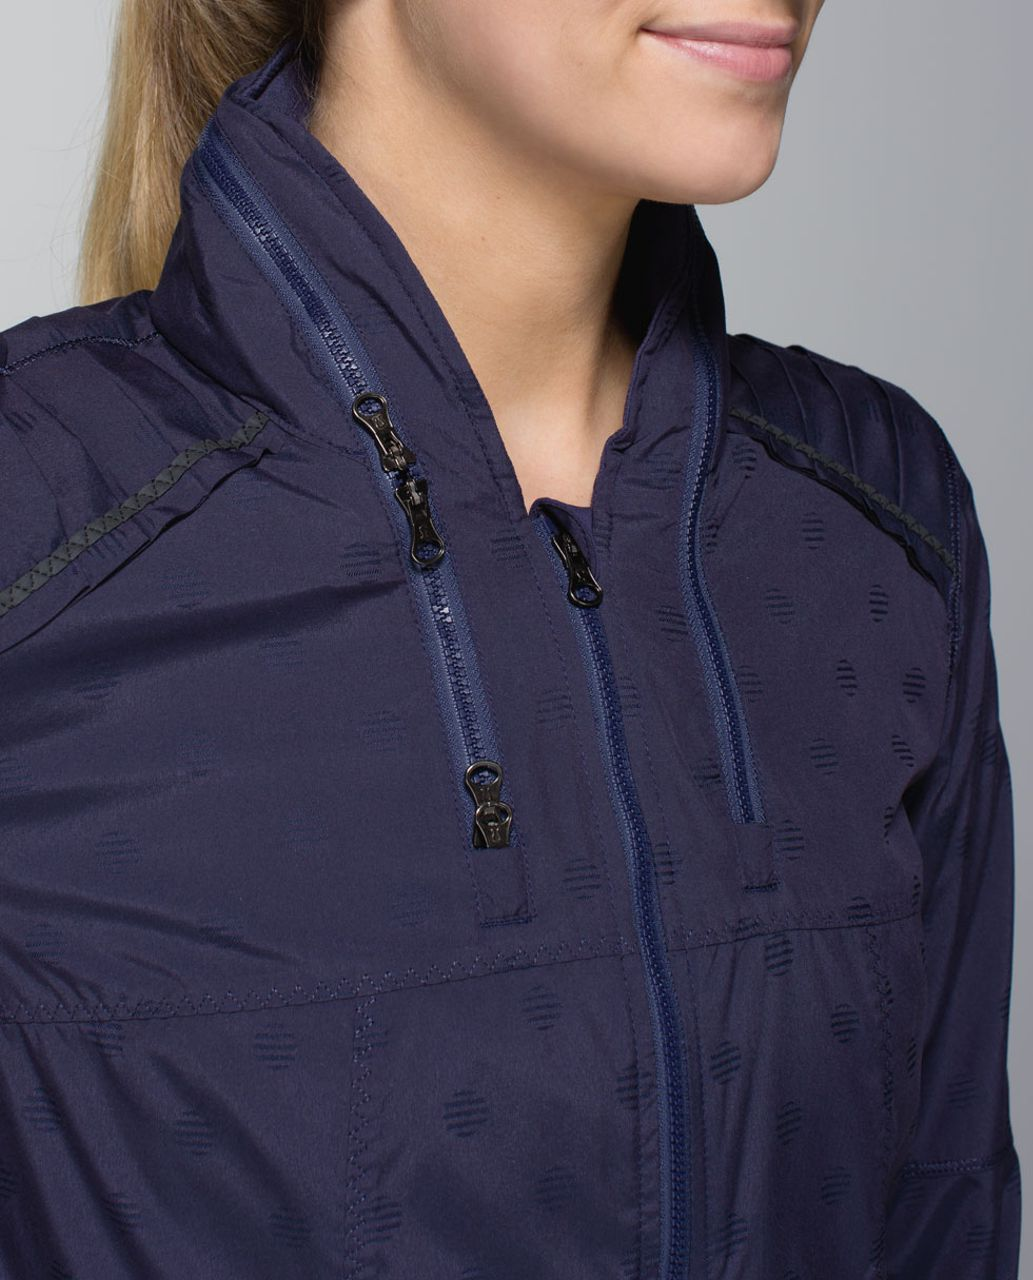 Lululemon Spring Forward Jacket - Stripe Dot Cadet Blue